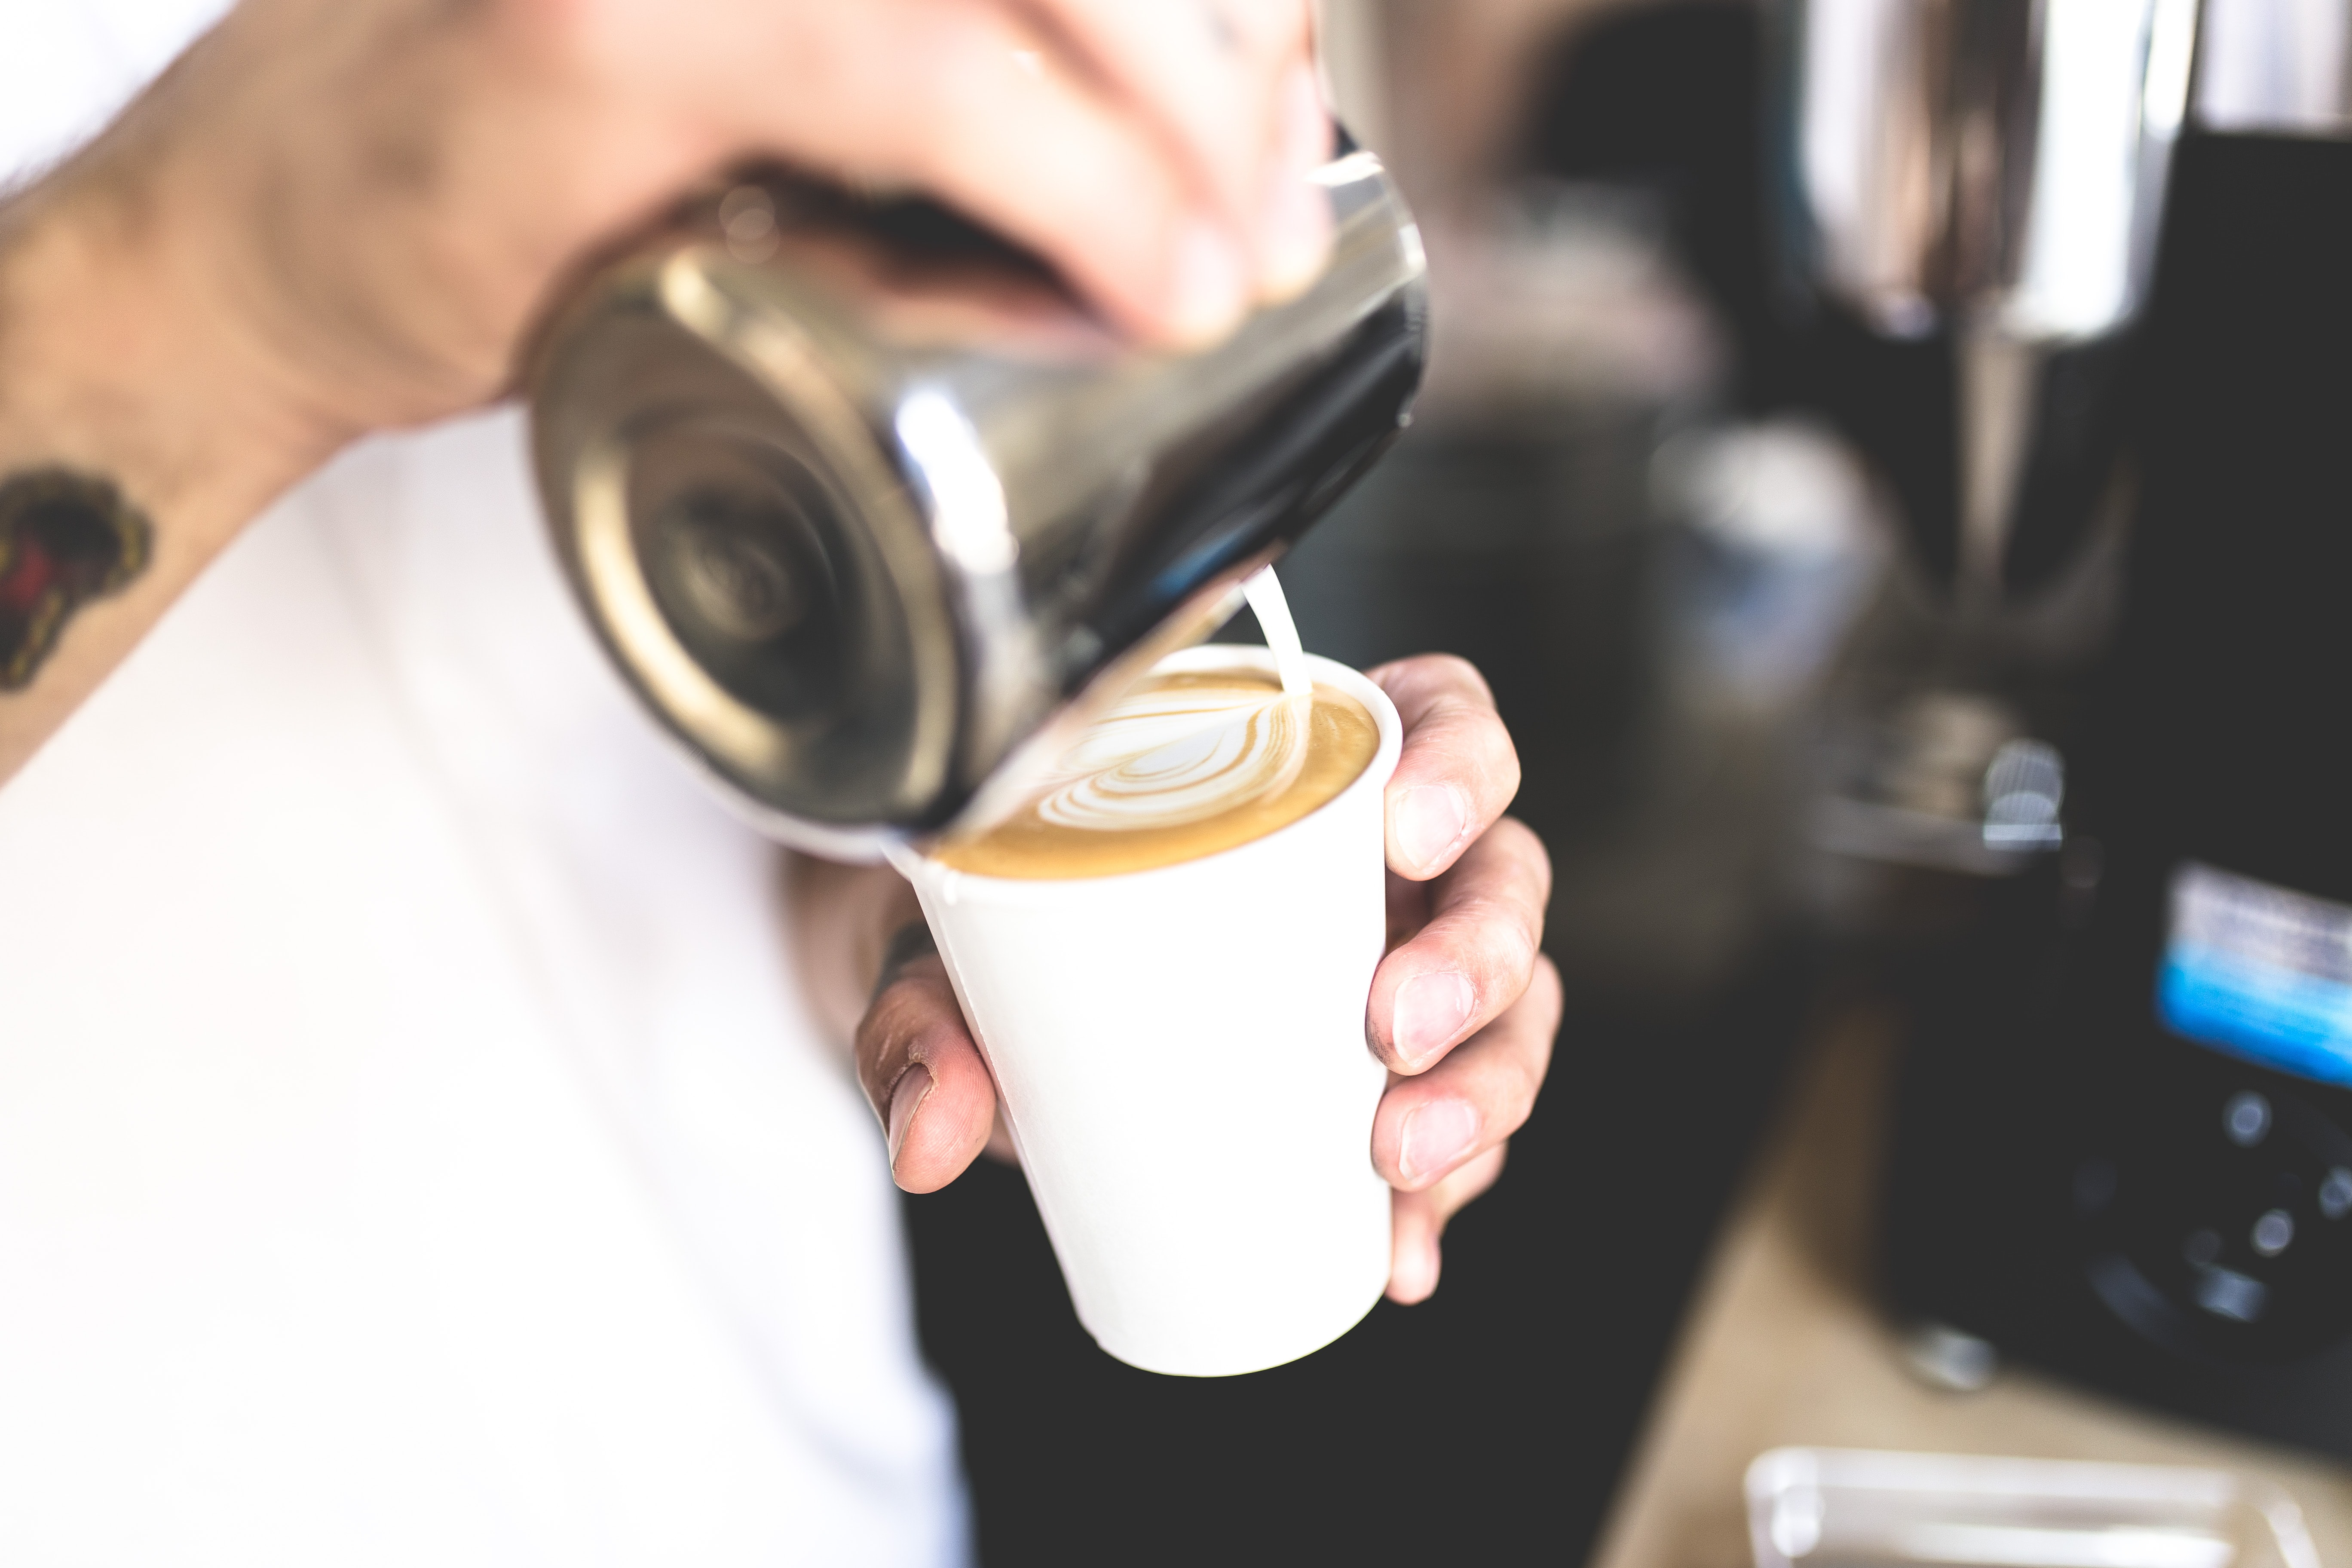 selective focus photography of person pouring coffee on cup